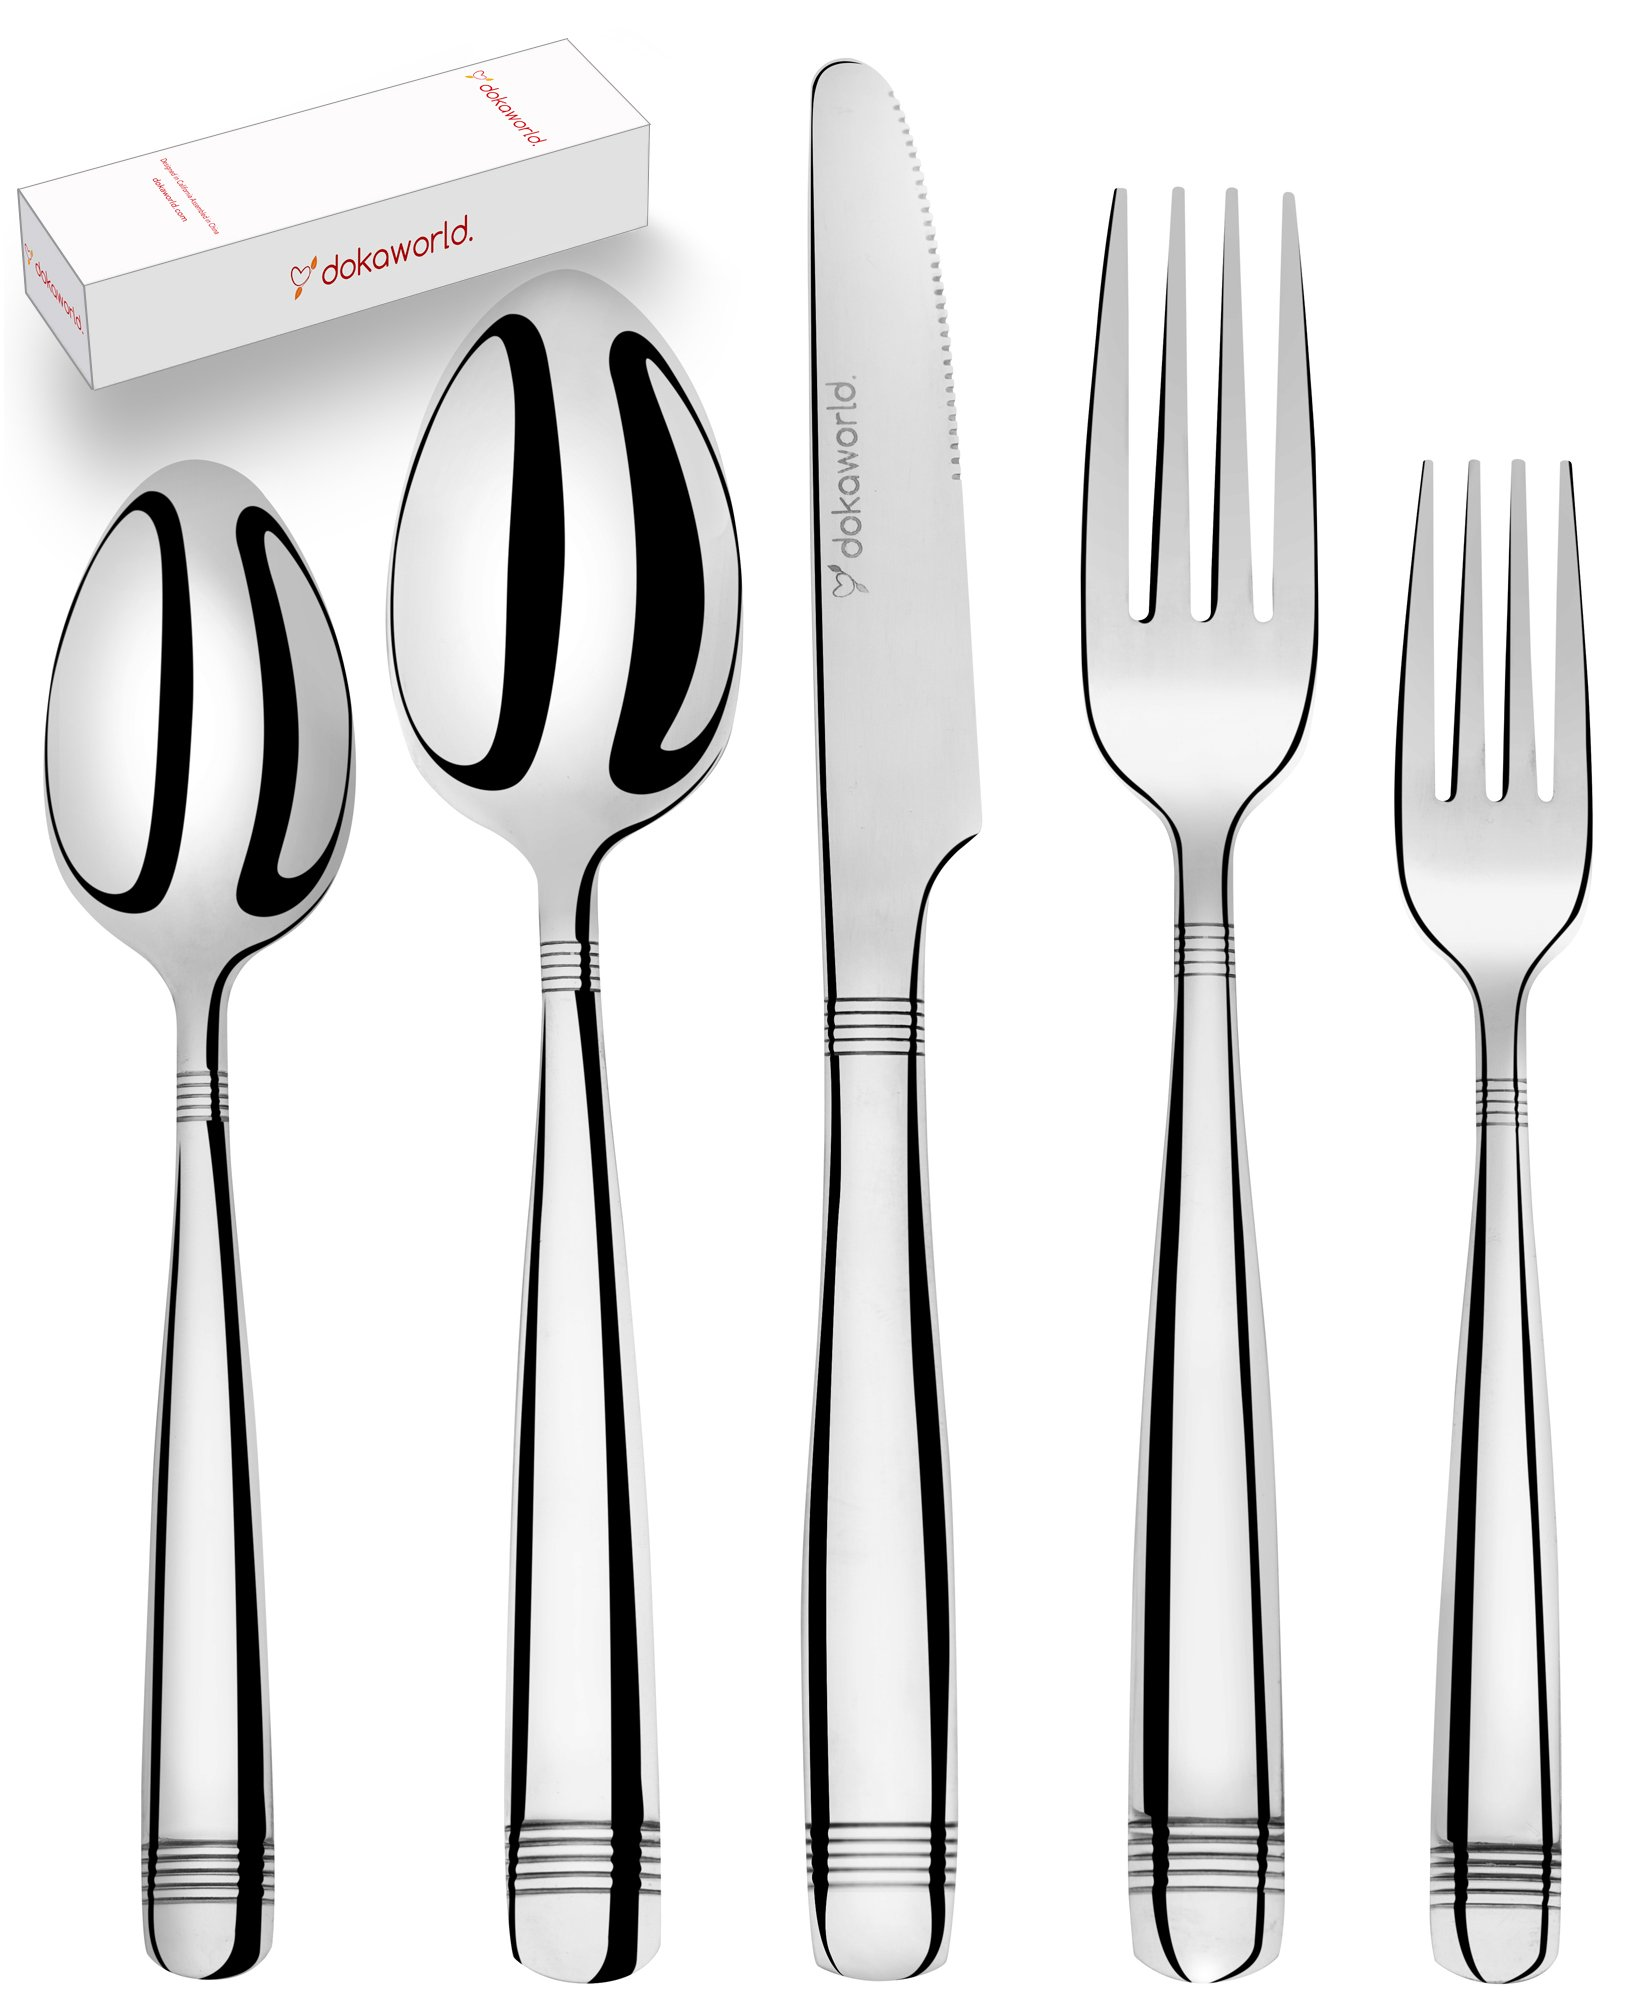 Silverware Set 18/10 Stainless Steel – Elegant Flatware Set of 20 Pieces – Eating Utensils for 4 People – Modern Cutlery Kit of Dinner Forks – Spoons Knives Dessert Forks and Spoons 71zjV2SthFL